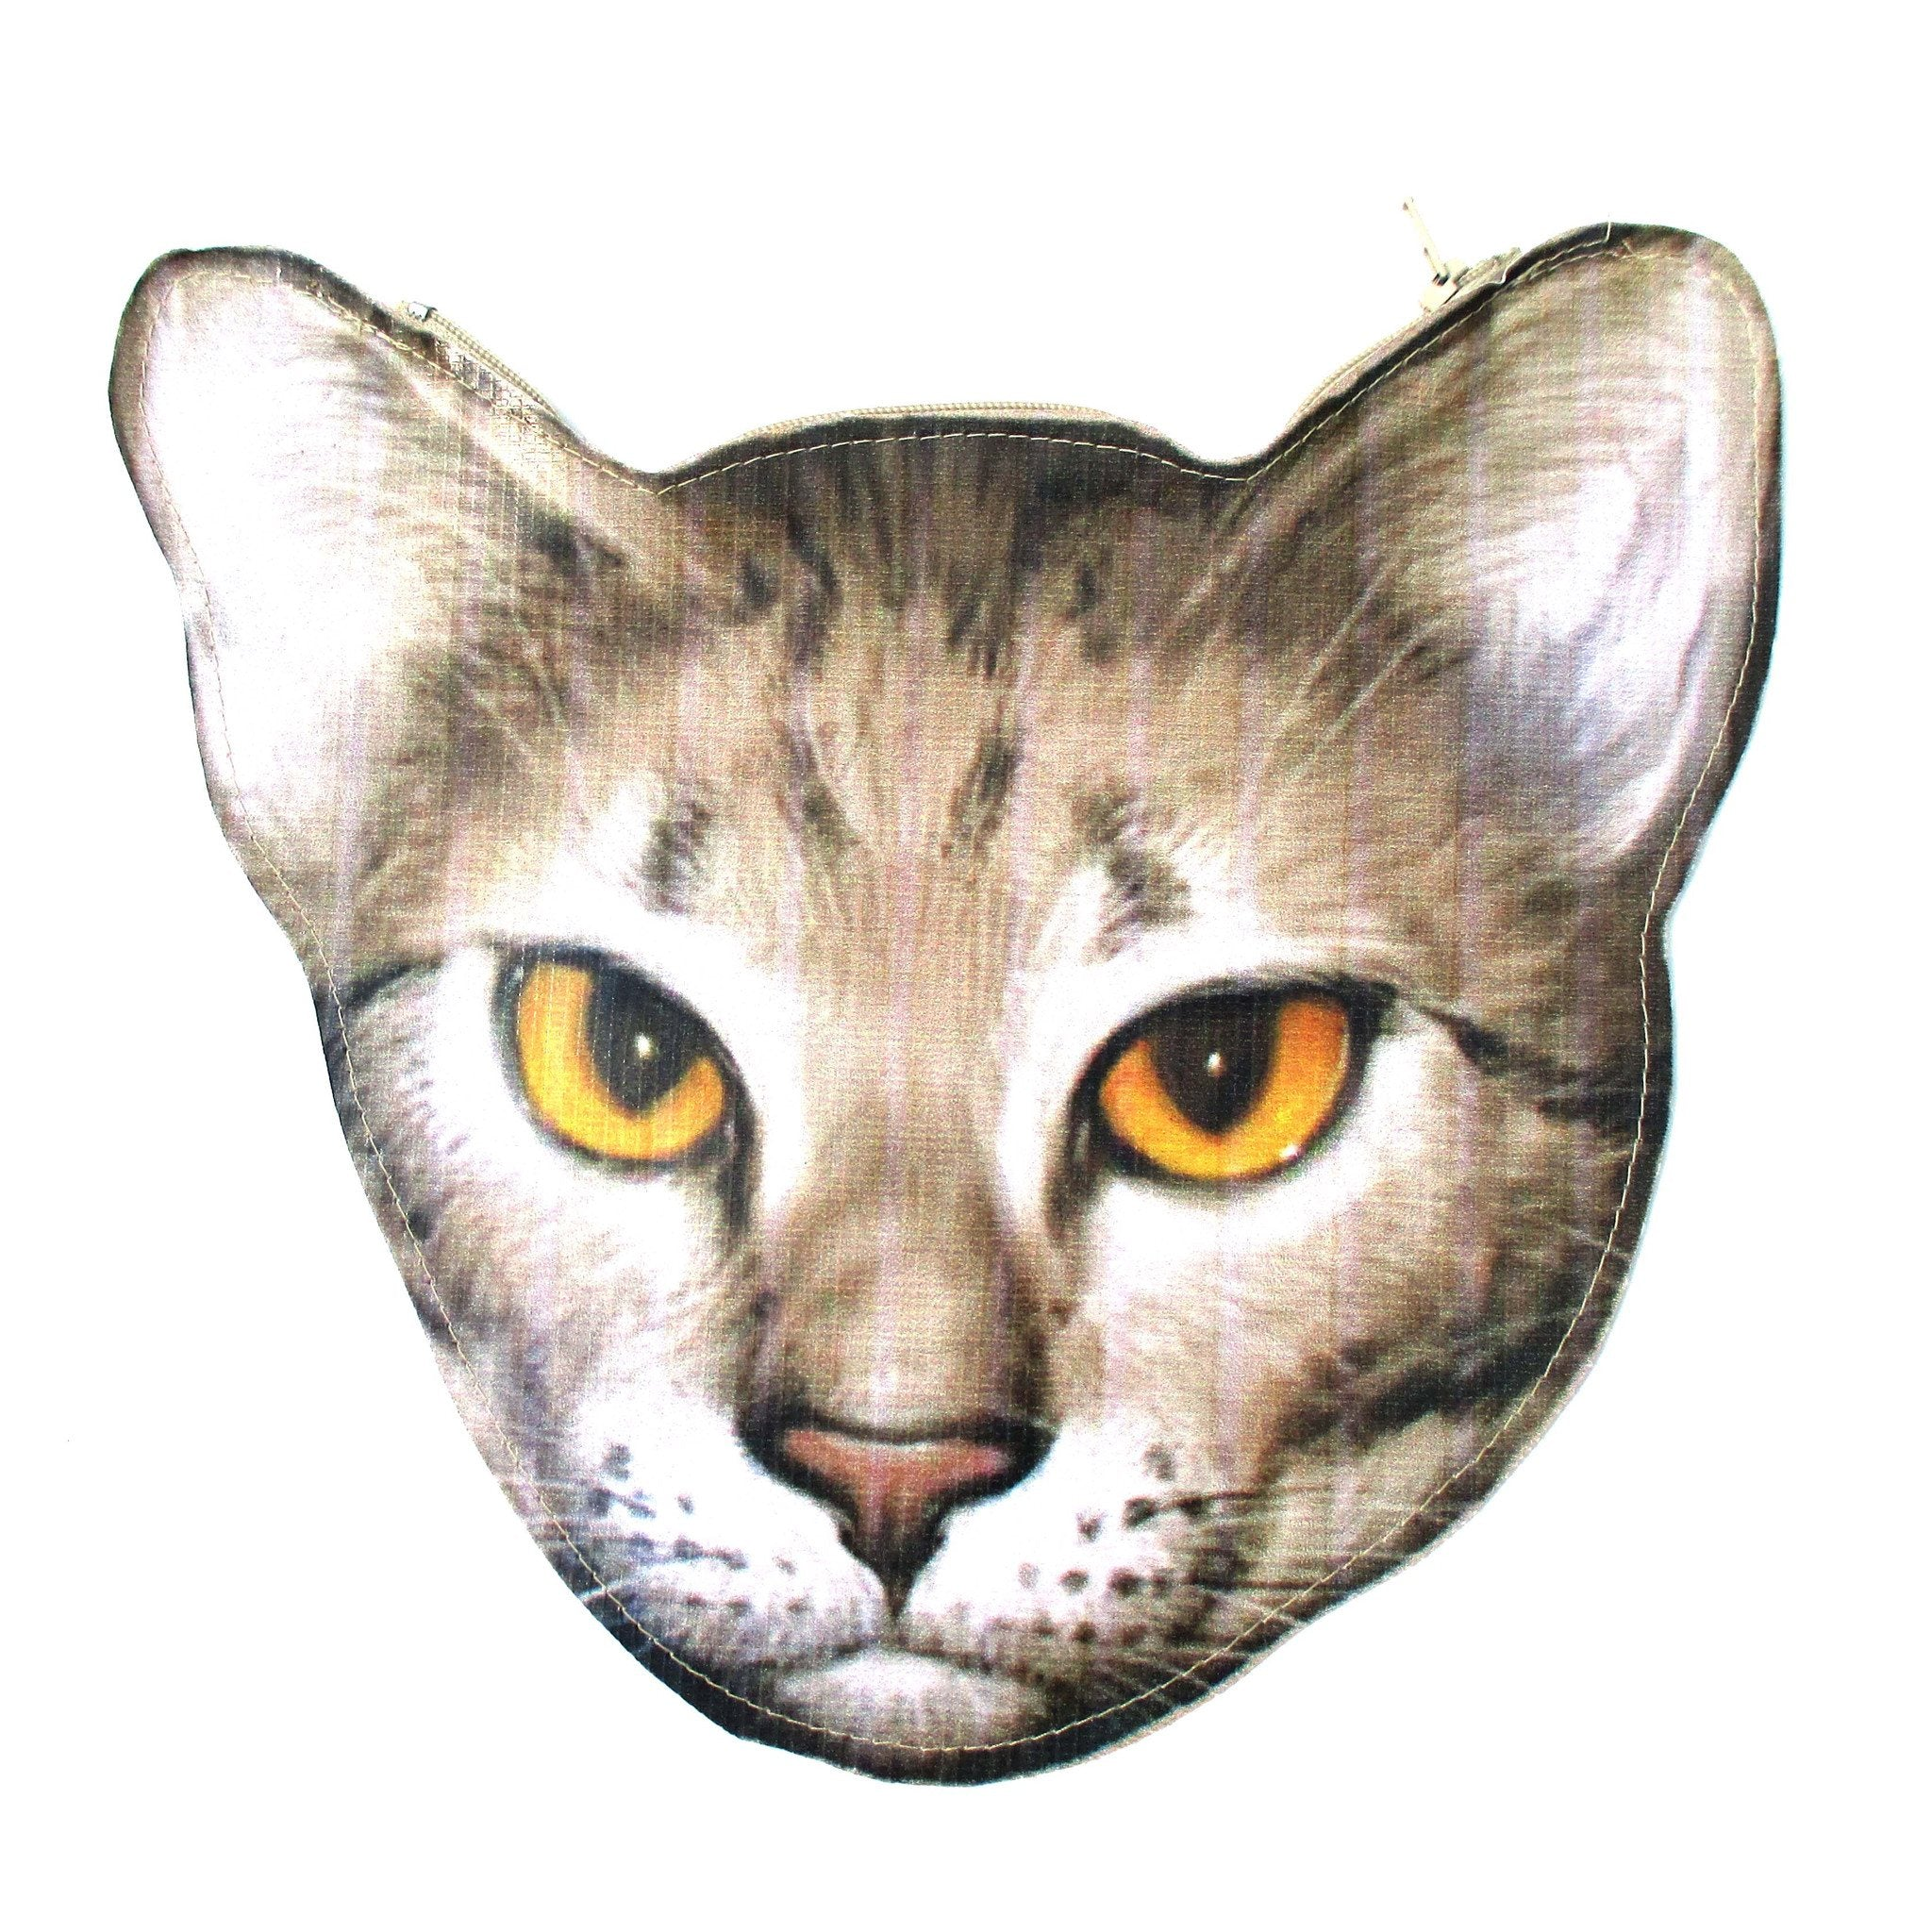 Cougar Lynx Cat Head Shaped Vinyl Animal Photo Print Clutch Bag